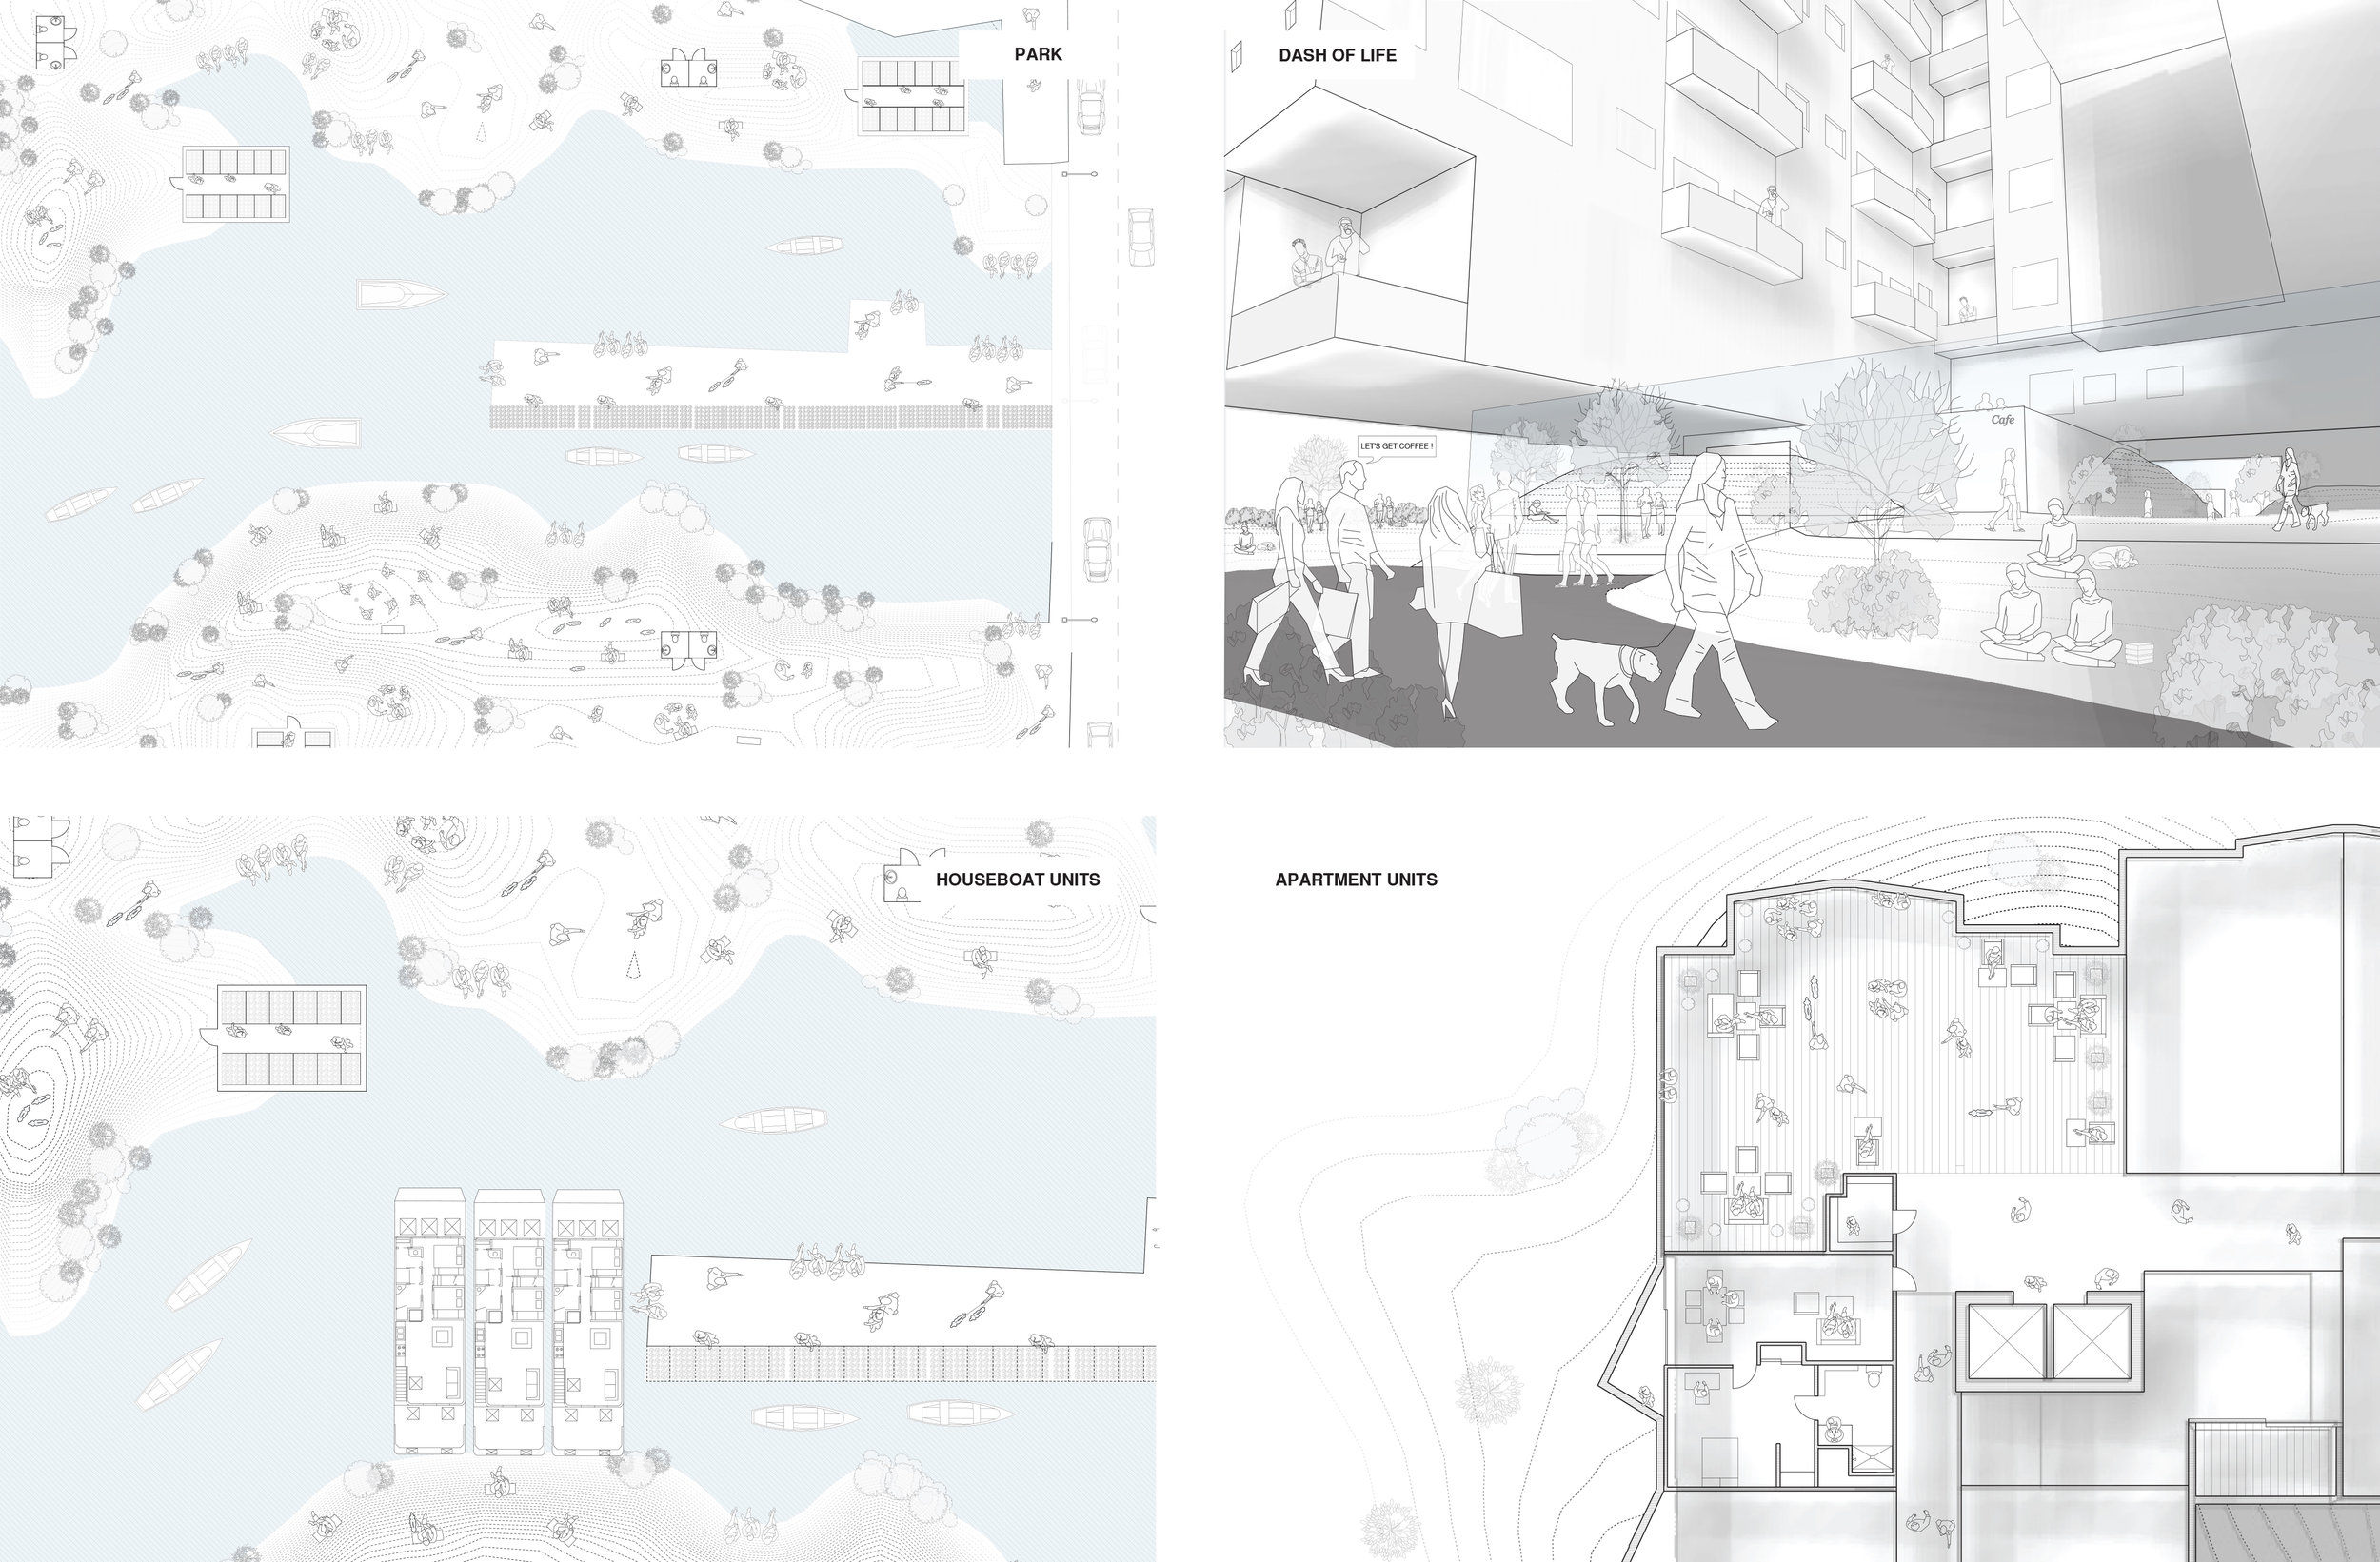 Design for a dynamic ground for Mission Bay by Manasi Kshirsagar, Trenton Jewett, and Shailee Shah.